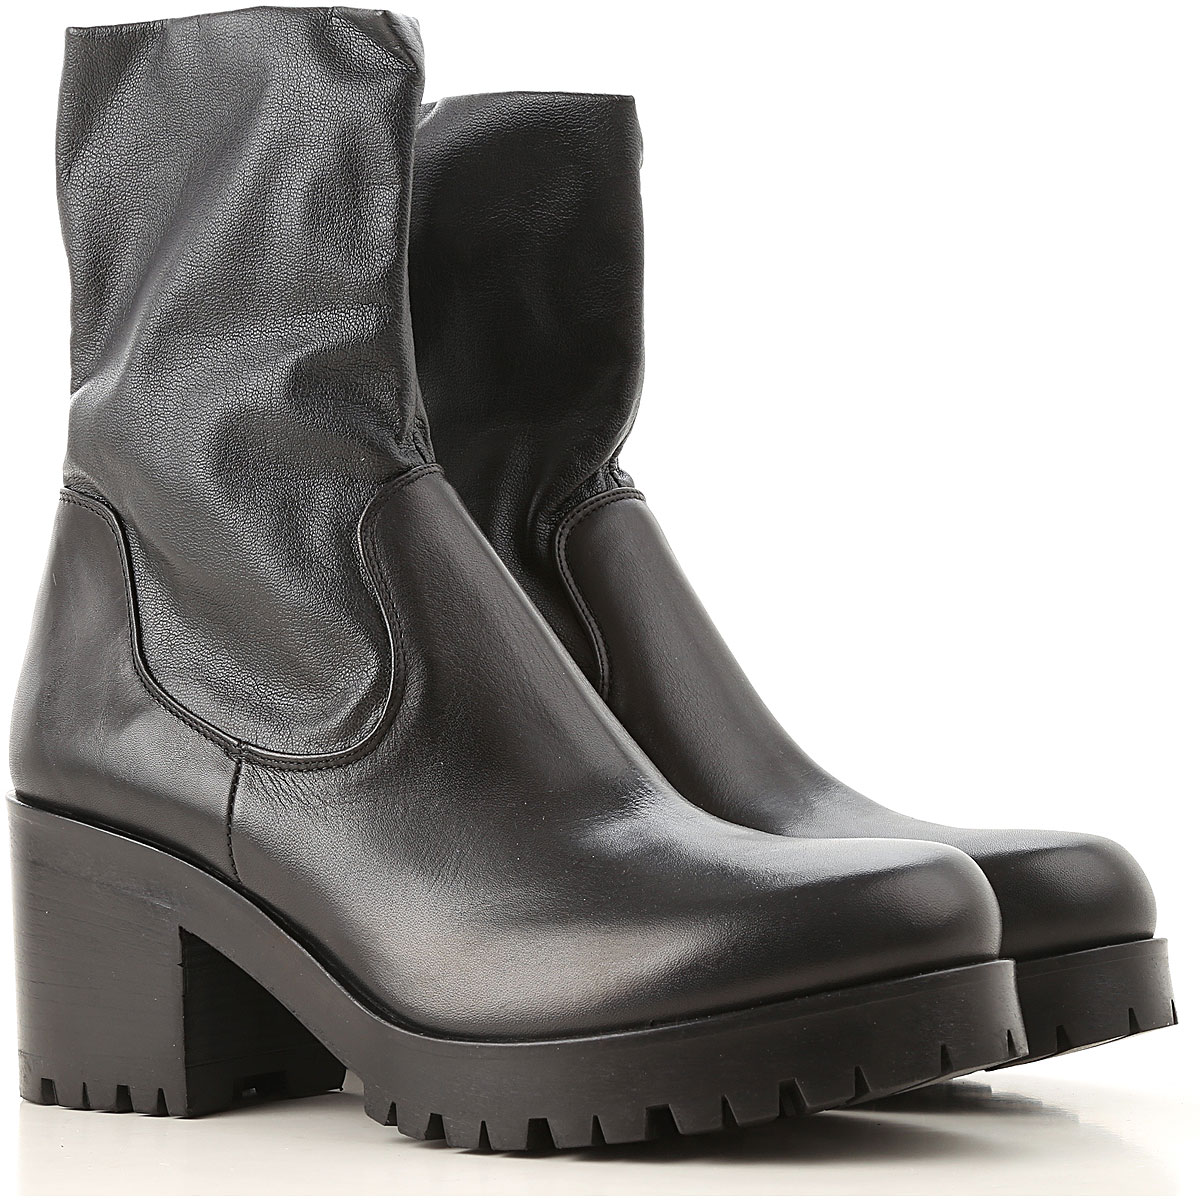 Image of Strategia Boots for Women, Booties, Black, Leather, 2017, 6 7 9